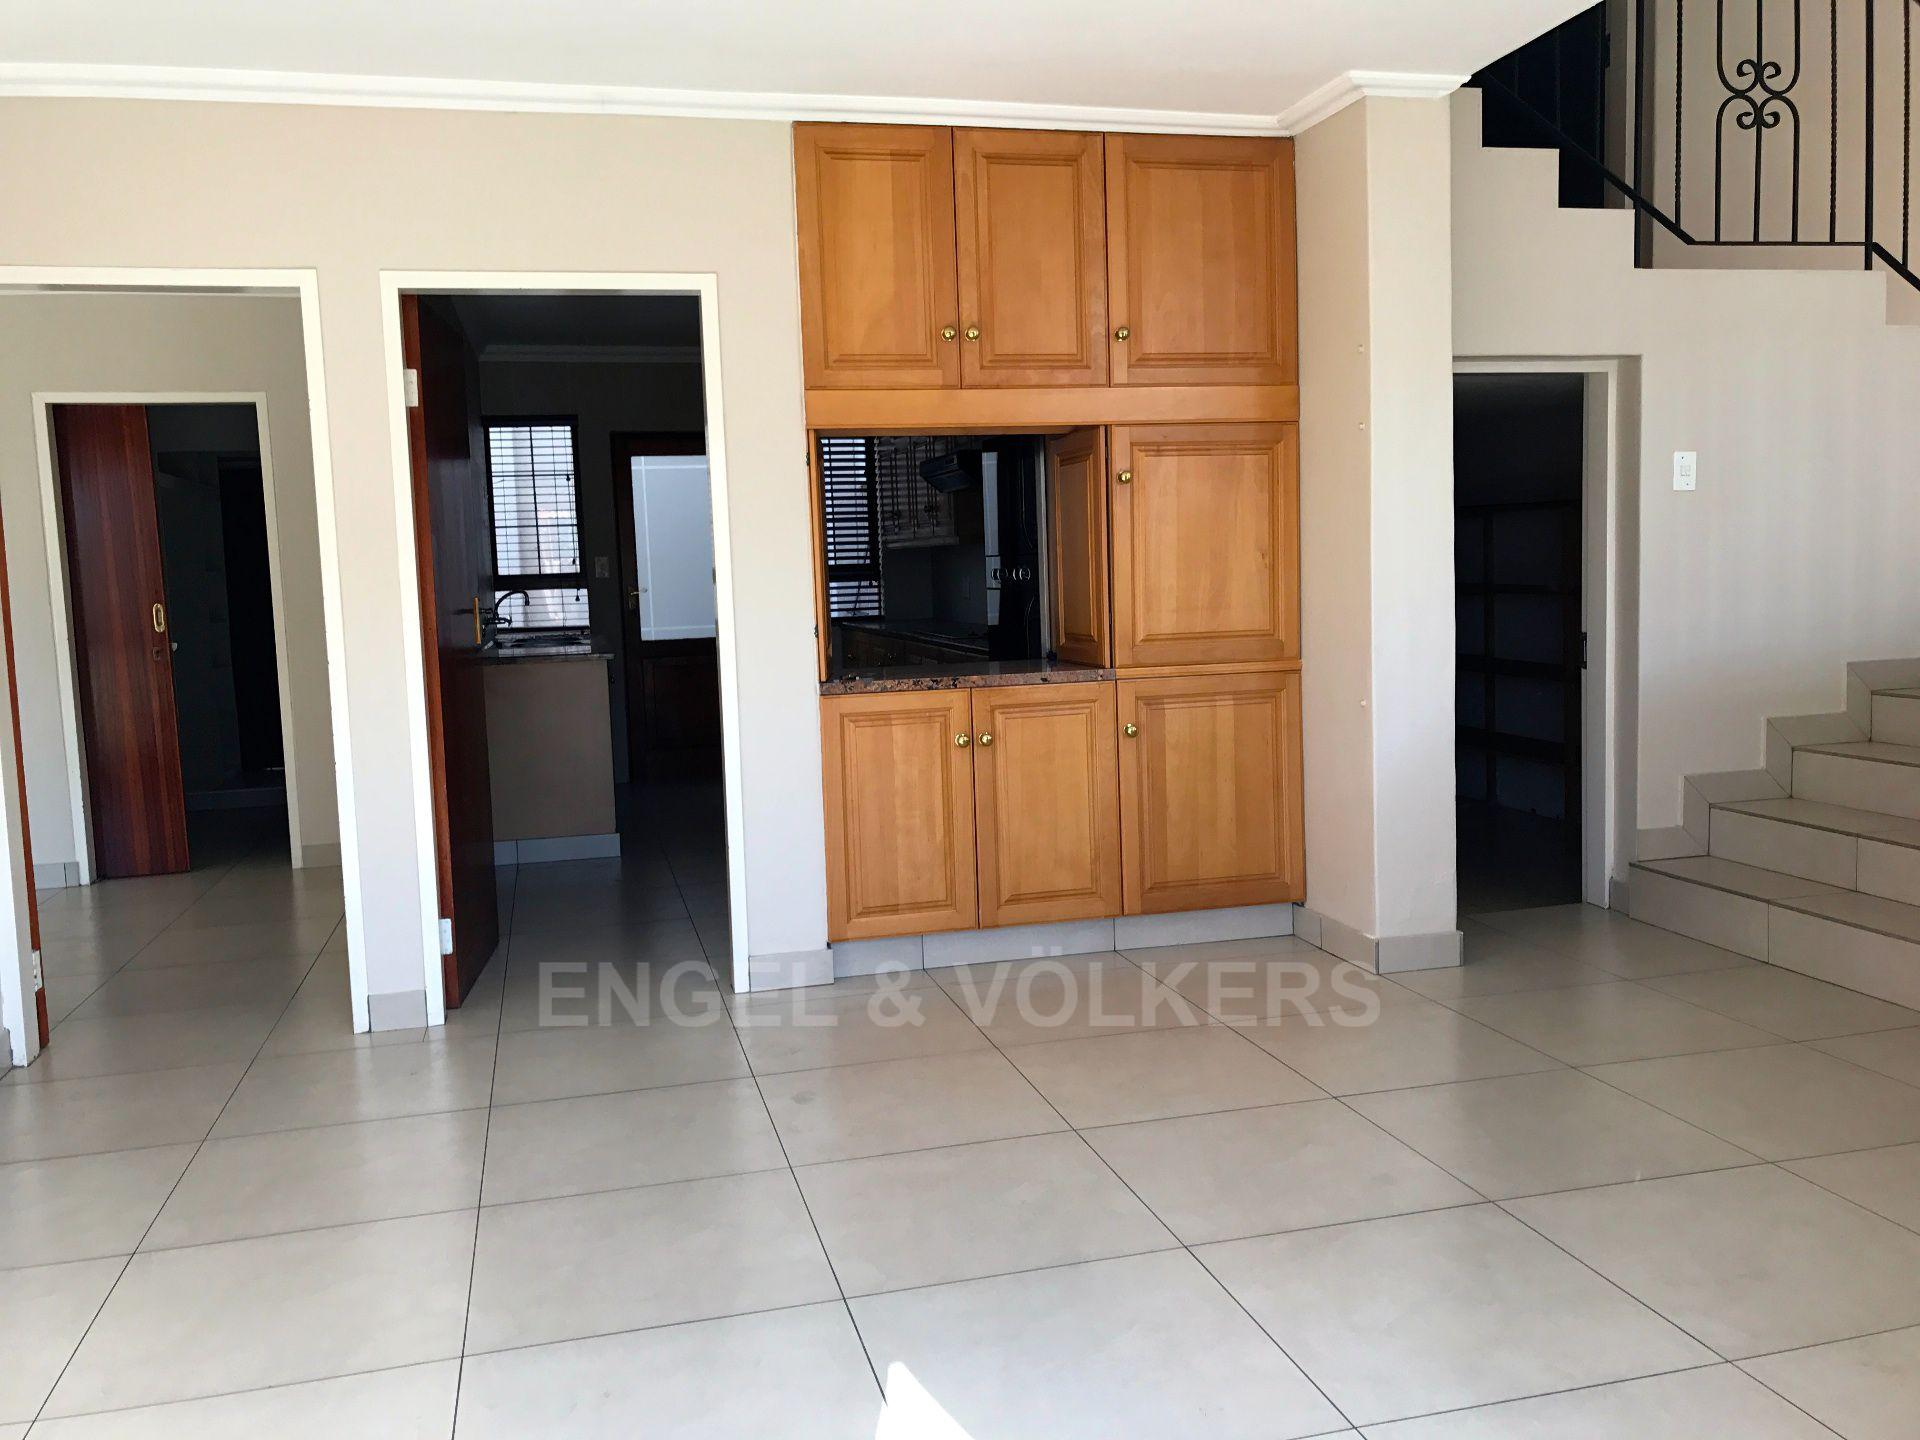 Waterkloof property for sale. Ref No: 13500498. Picture no 9